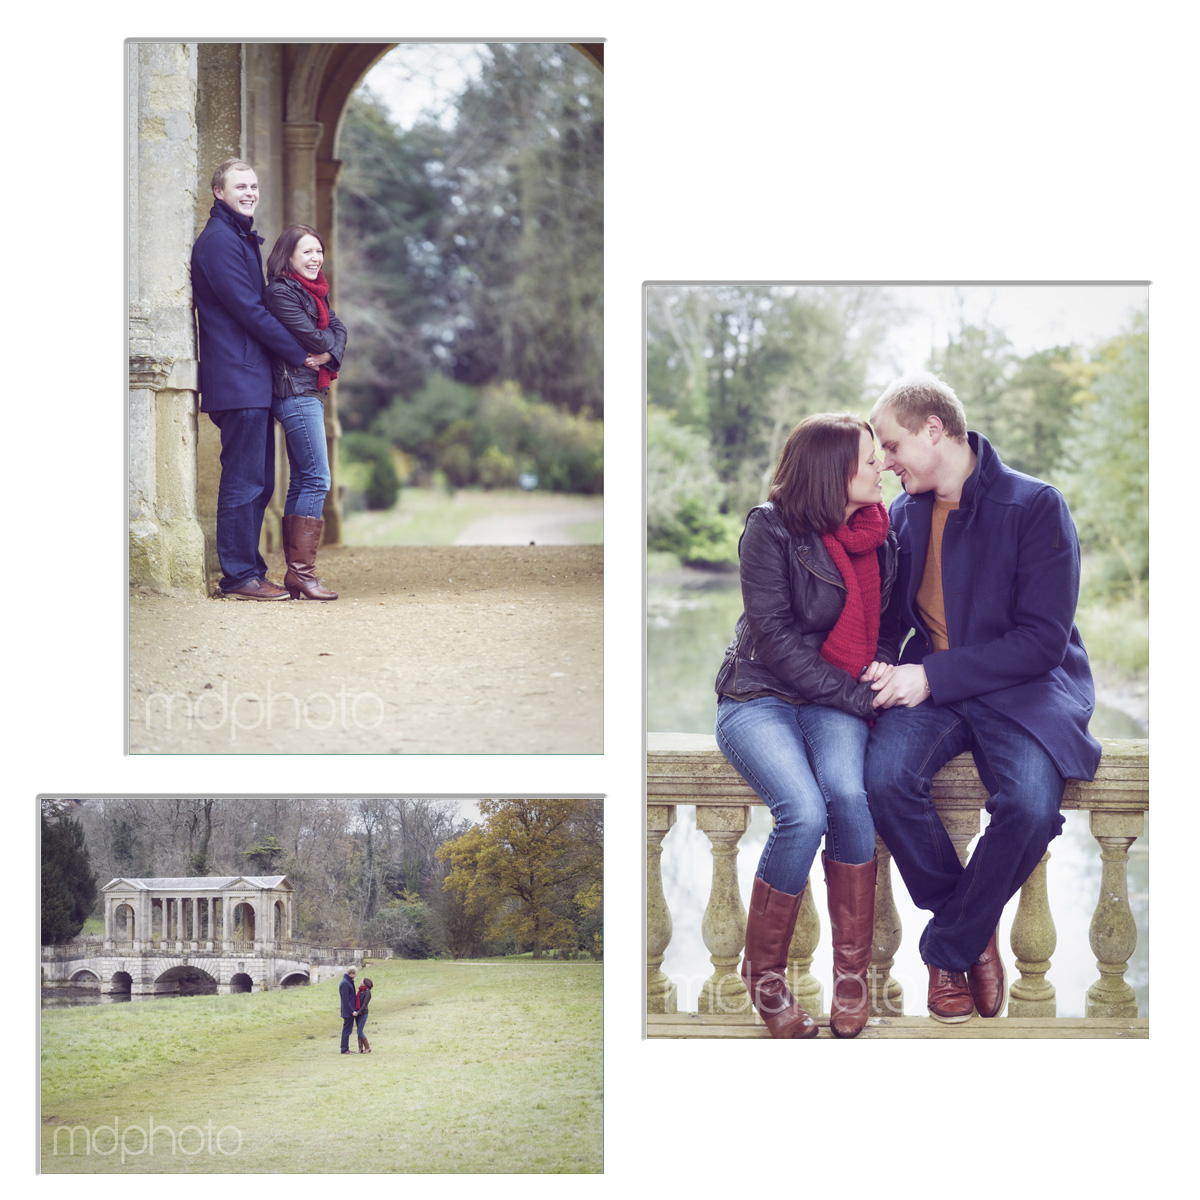 Stowe_Park_Engagement_Photo_Shoot_Ingleby_Barwick_Yarm_Wedding_mdphoto_5